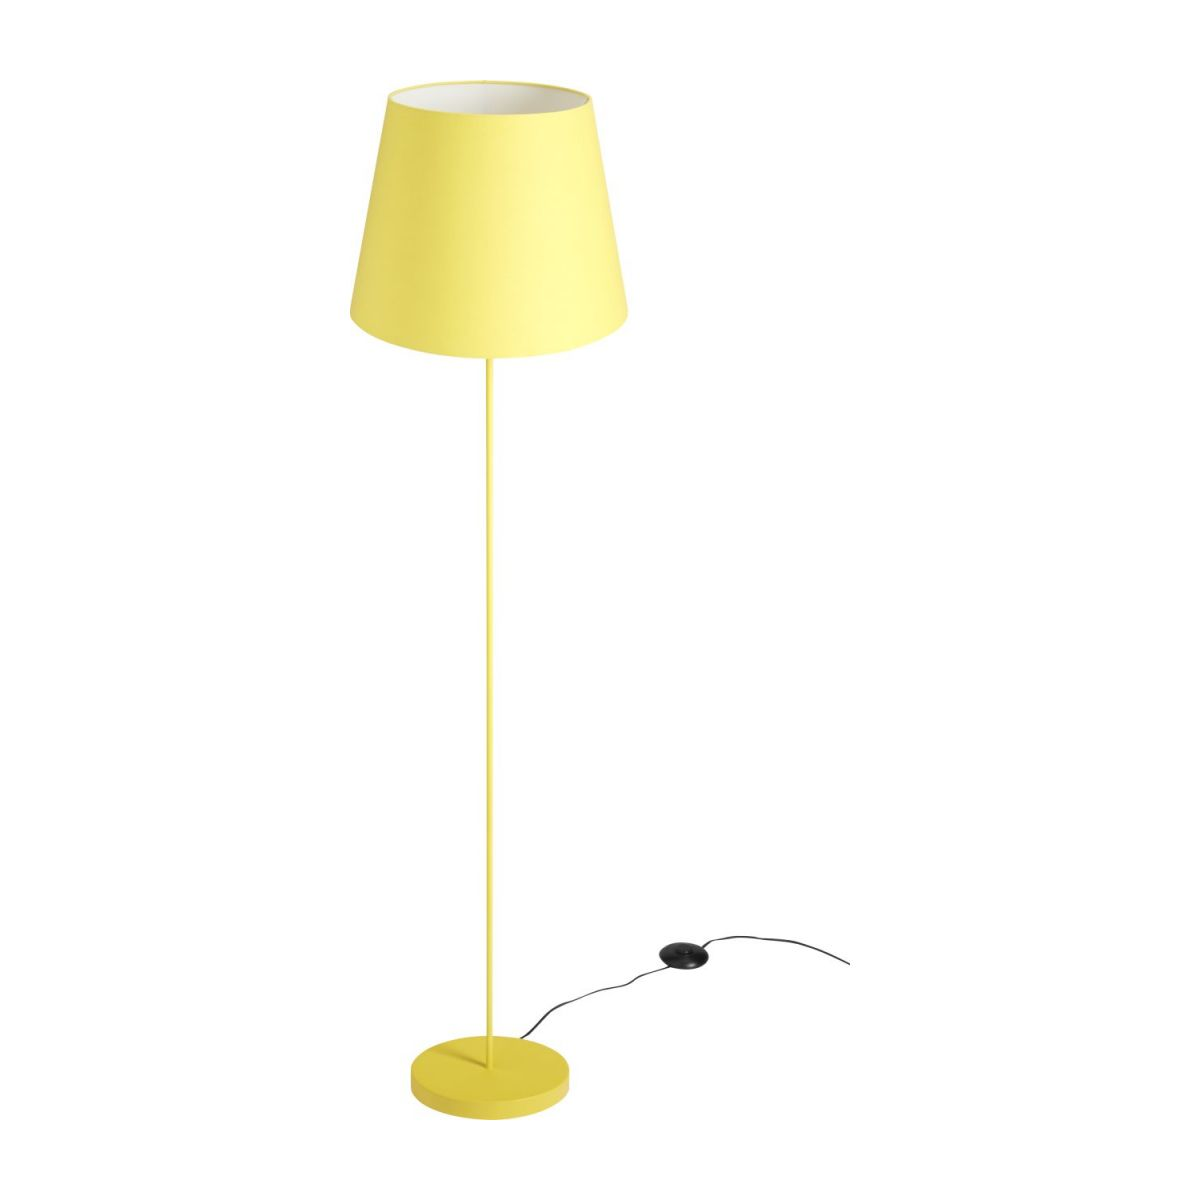 Yellow lamp n°3